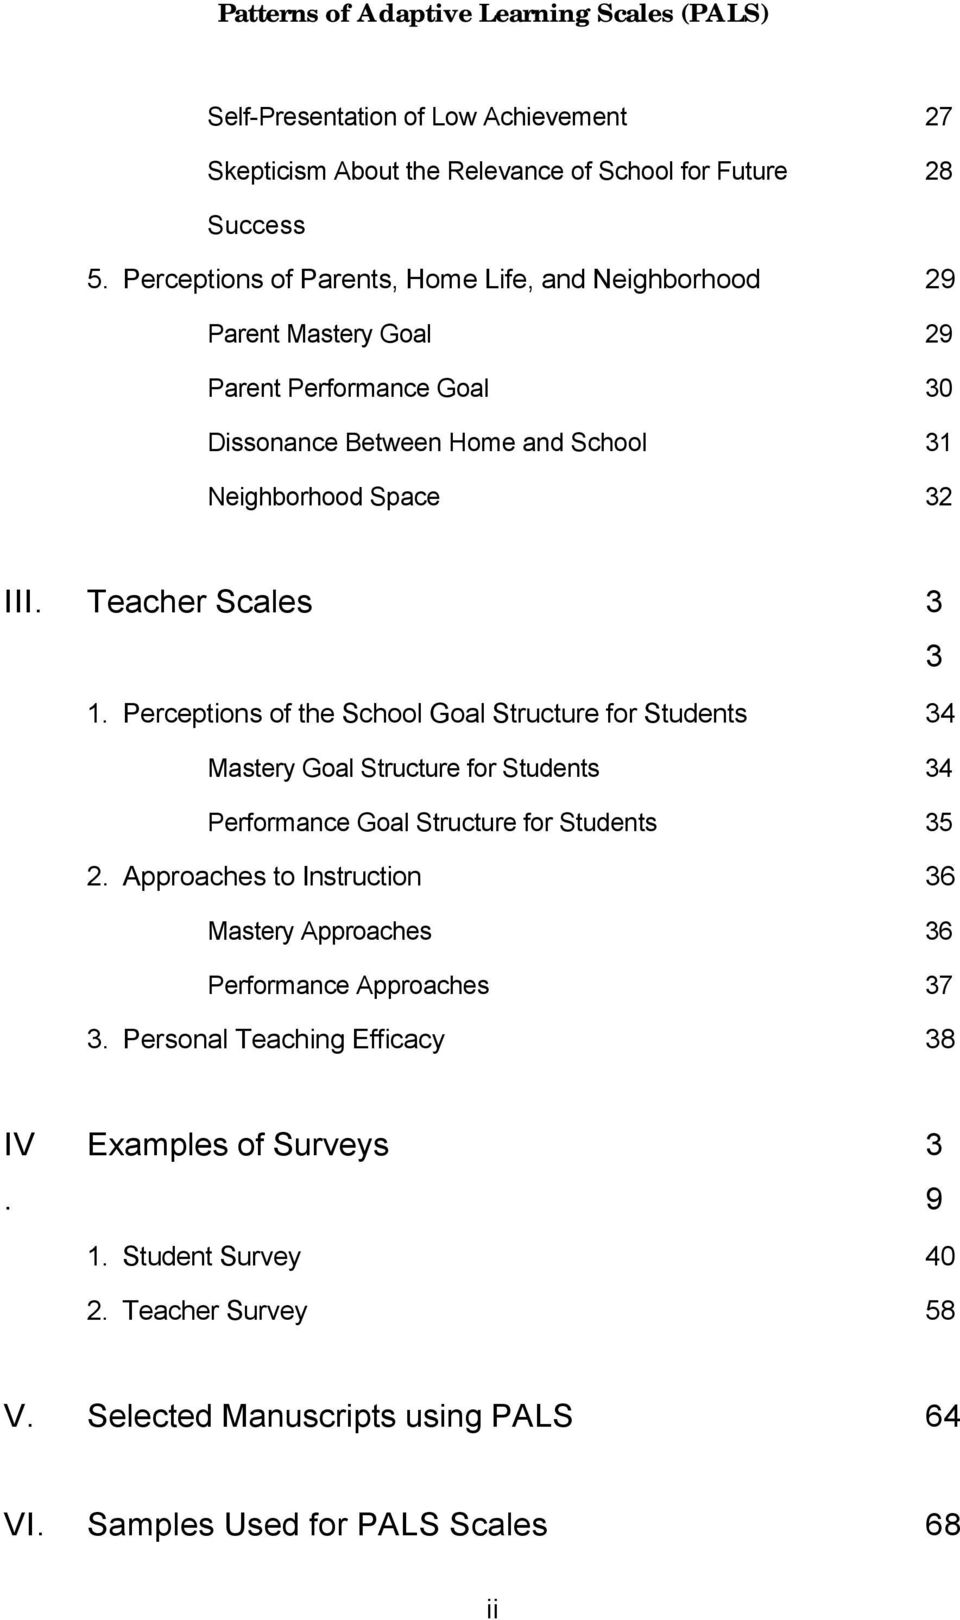 Teacher Scales 3 3 1. Perceptions of the School Goal Structure for Students 34 Mastery Goal Structure for Students 34 Performance Goal Structure for Students 35 2.